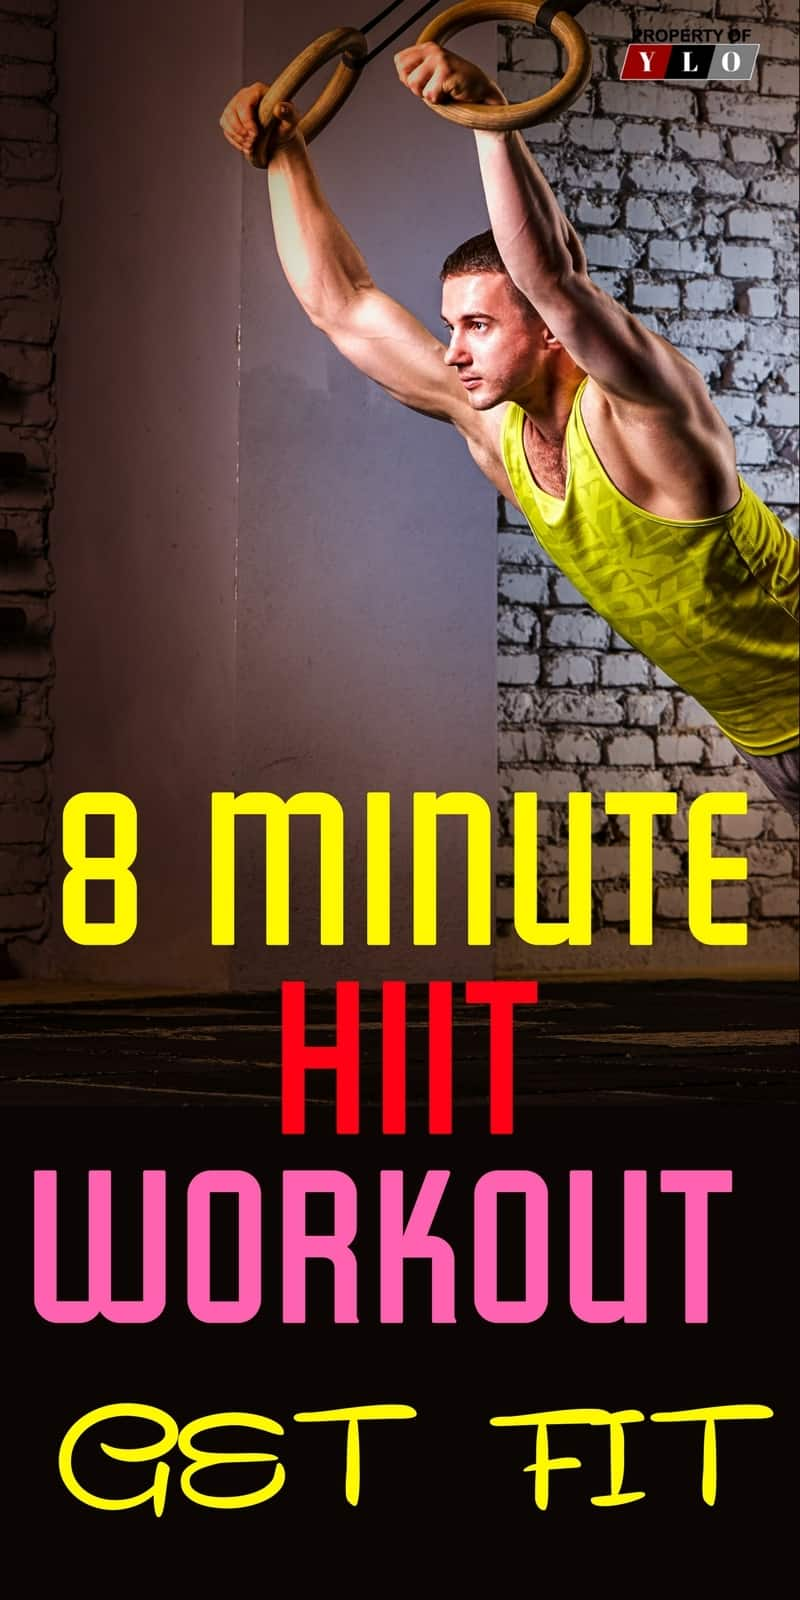 Looking for a HIIT Workout Schedule For Max Benefits? If you keep yourself updated to the newest trends of the fitness world, then you most probably have heard about the Tabata Progam. This works for Excercise, Excercise Motivation, Excercise For Beginners, Excercise for Women, workout, Fitness Motivation, Fitness for men, Fitness for women, weight loss, Lose Weight, Fat Burning, fat loss, lose fat, Quick weight loss.